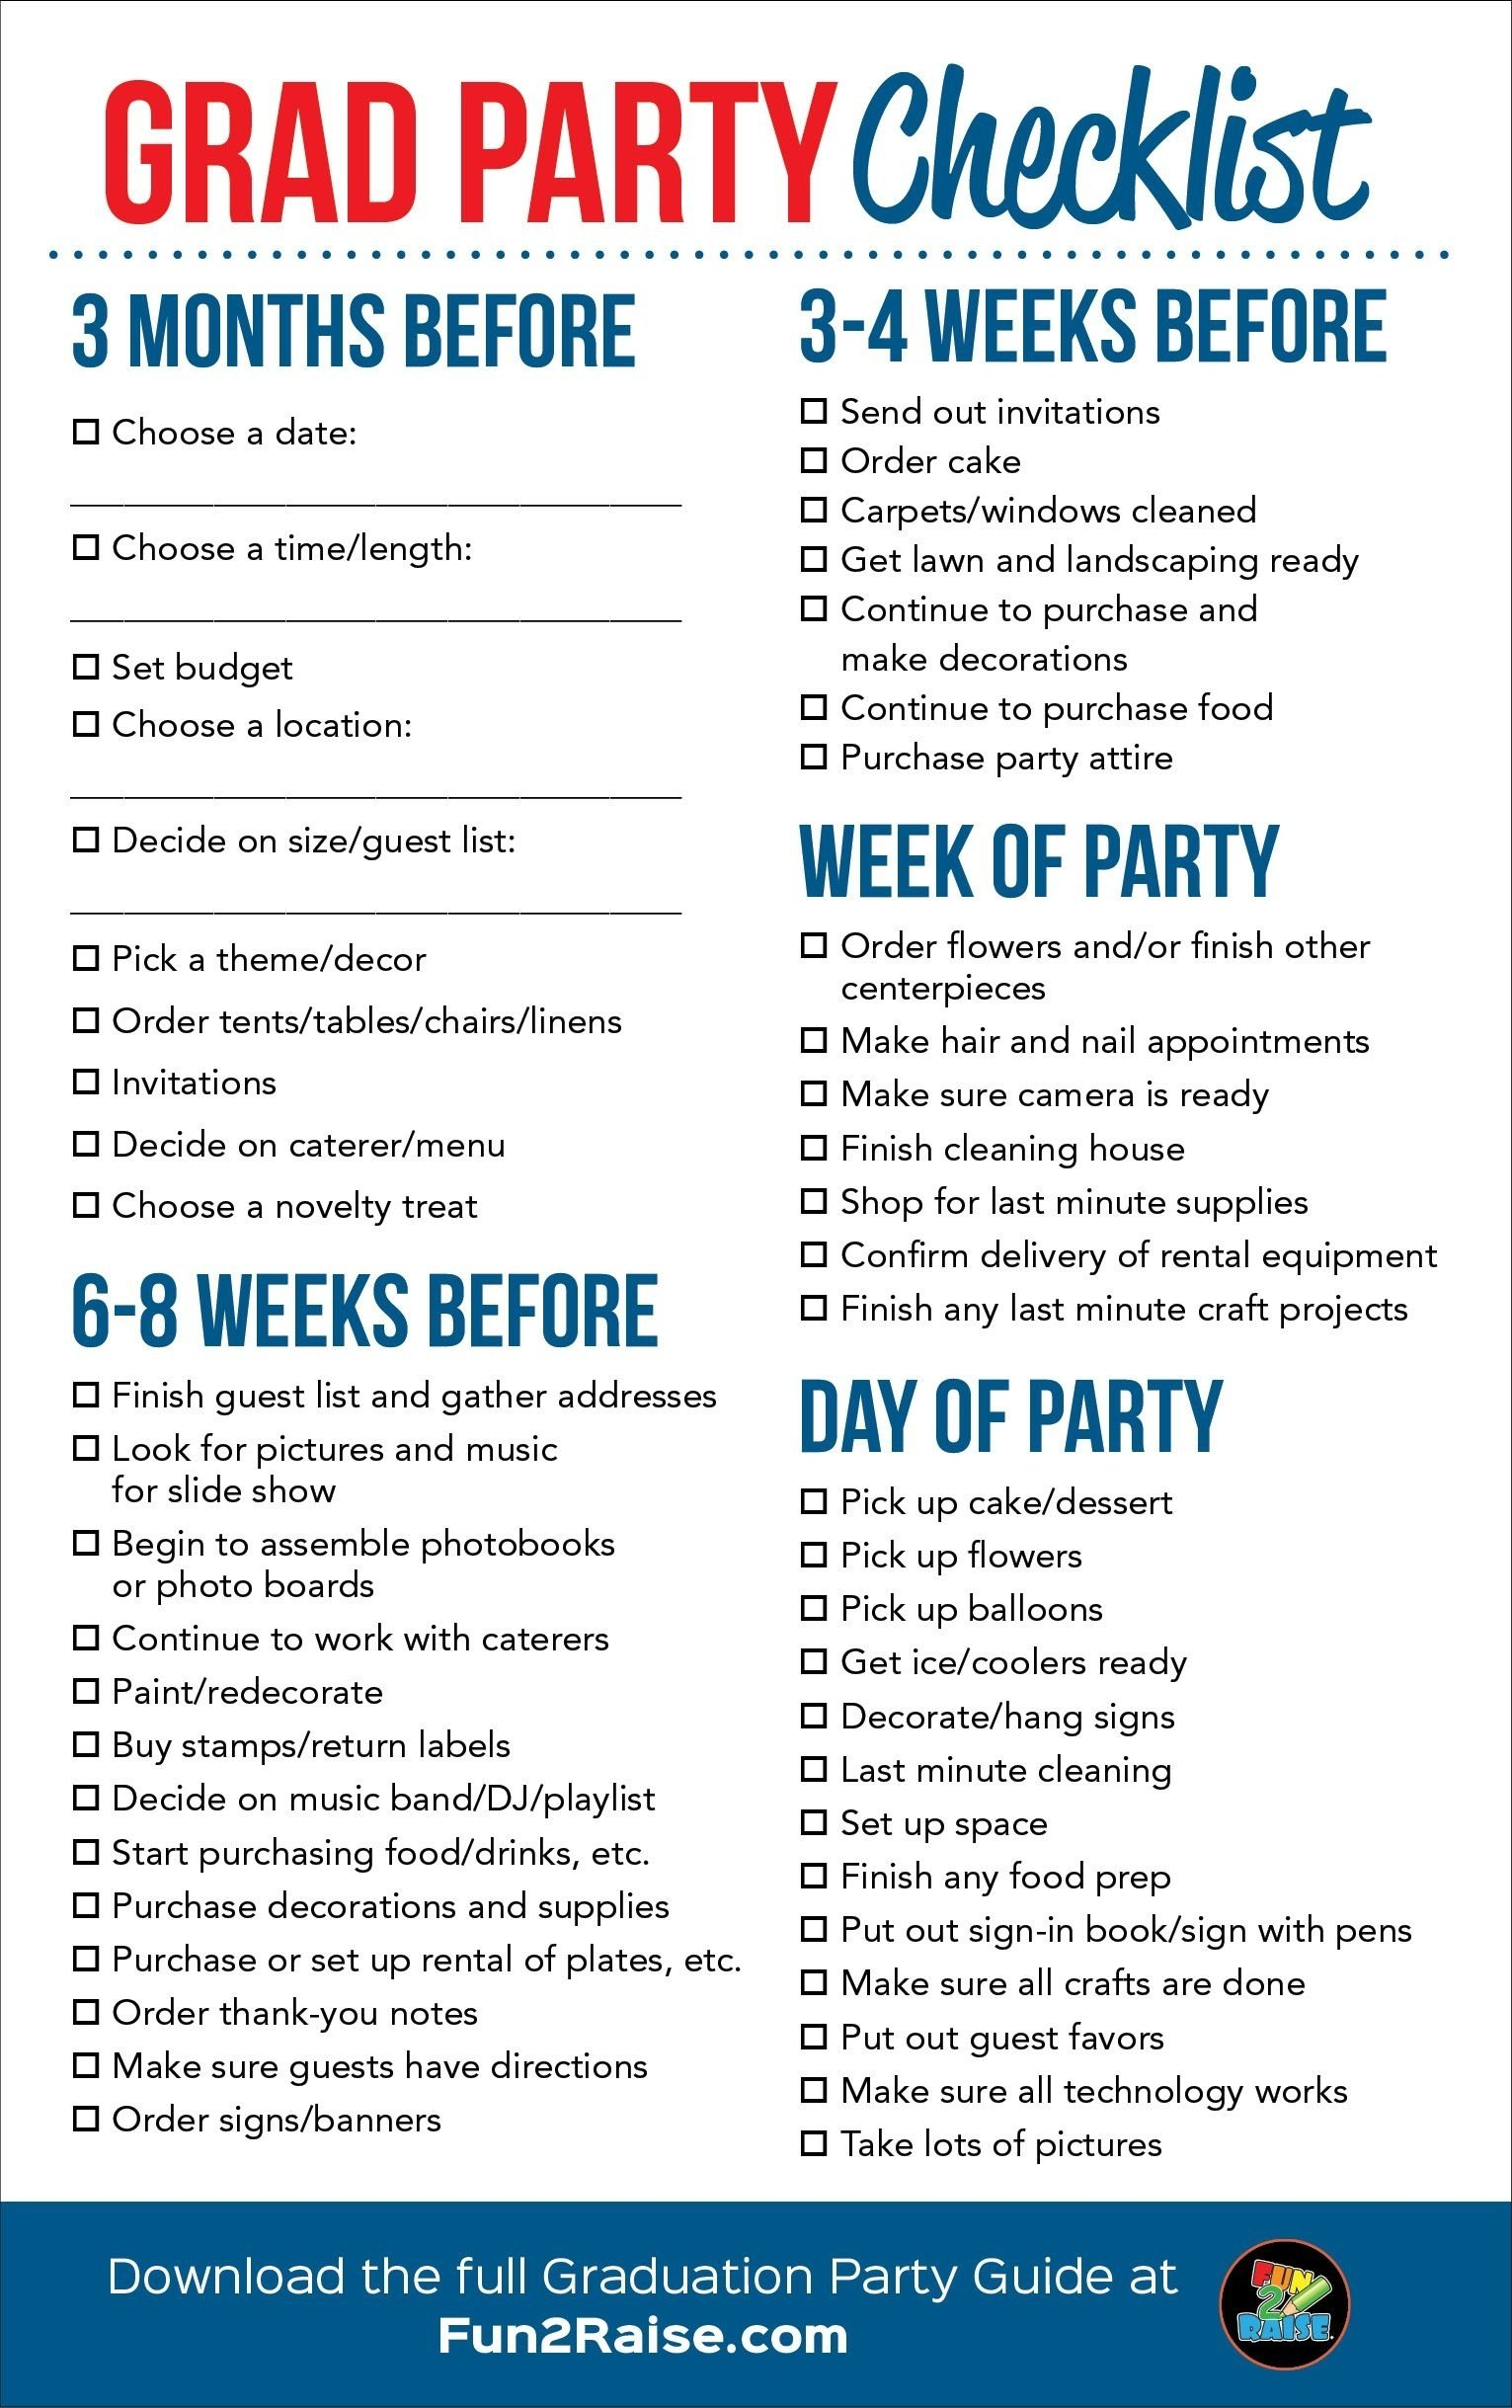 10 Wonderful High School Graduation Project Ideas the perfect grad party checklist for more helpful tips on planning